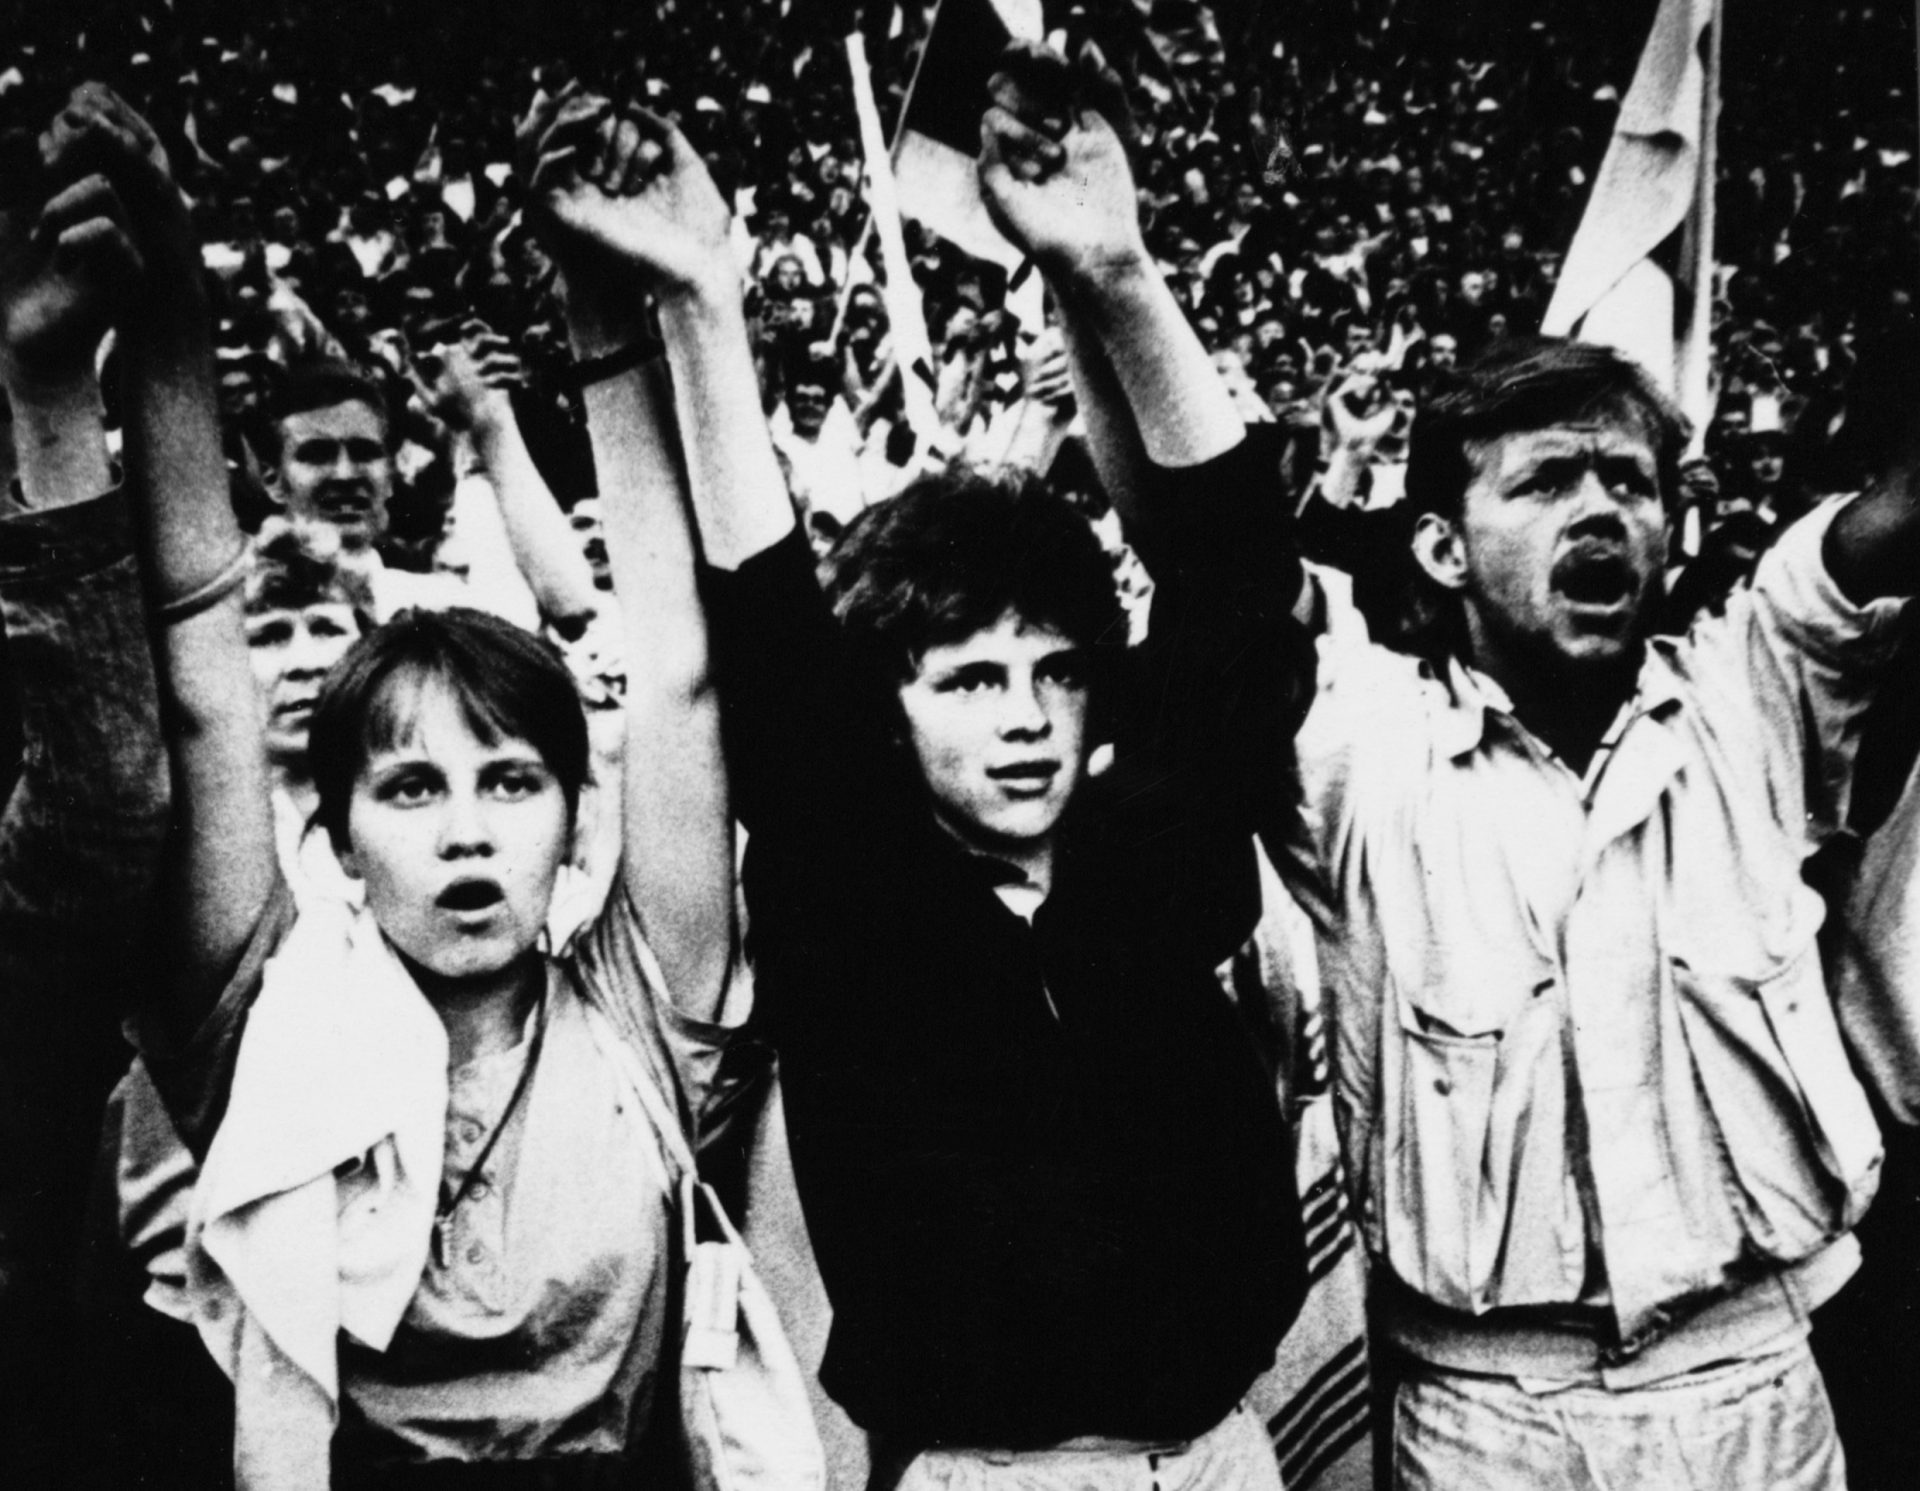 Estonians during the 'Singing Revolution' in 1988, when music galvanised the mood for change. Credit: Kalju Suur/Focus/Universal Images Group via Getty